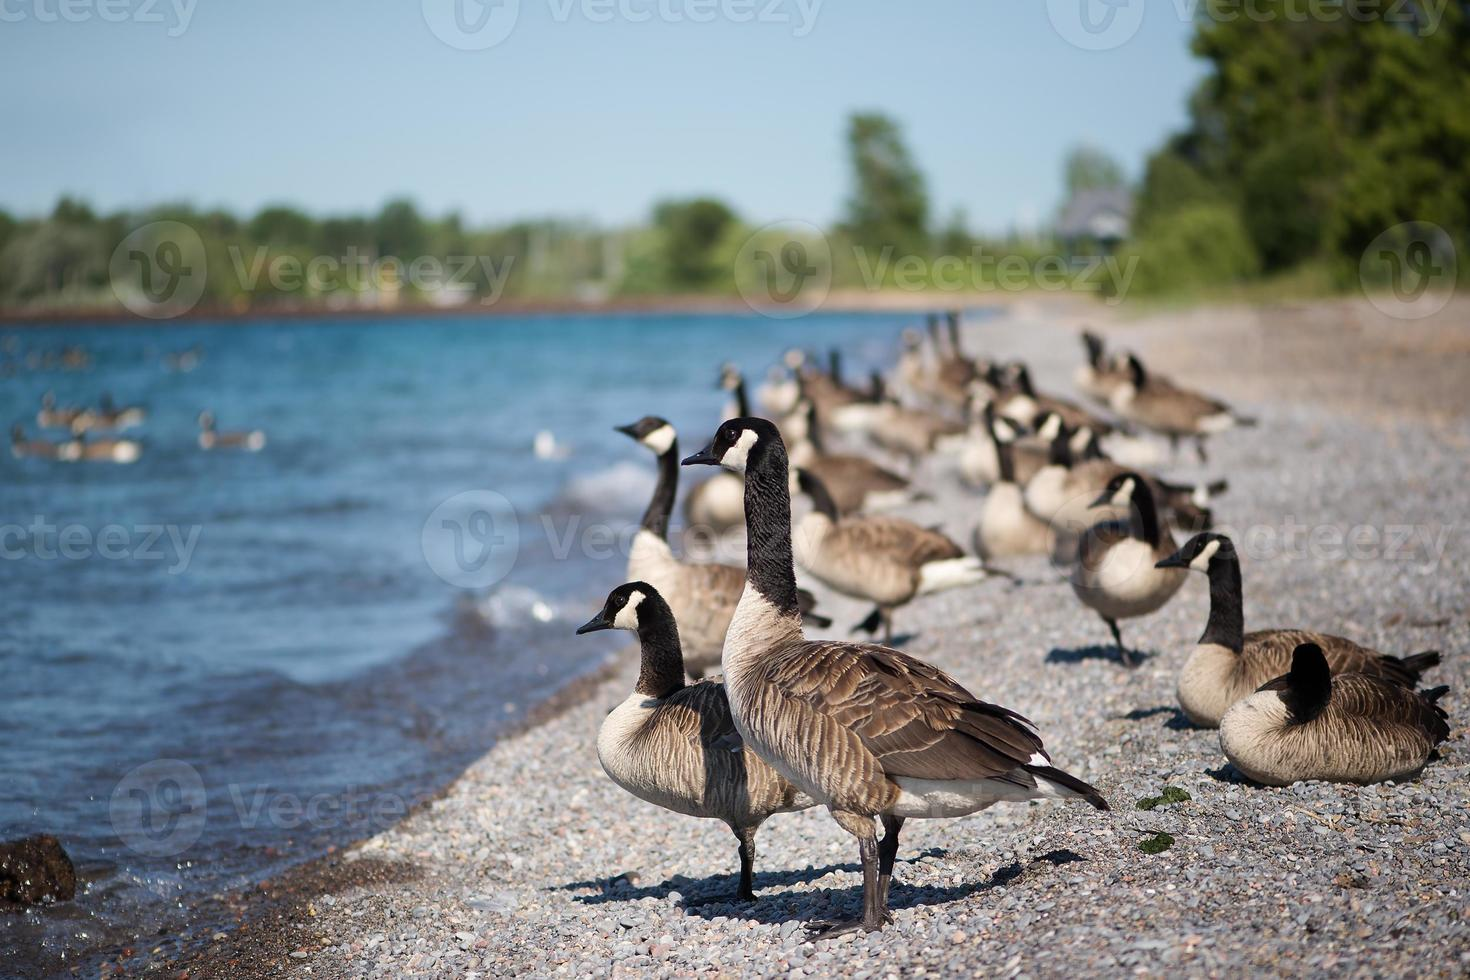 Geese Standing on the Beach photo